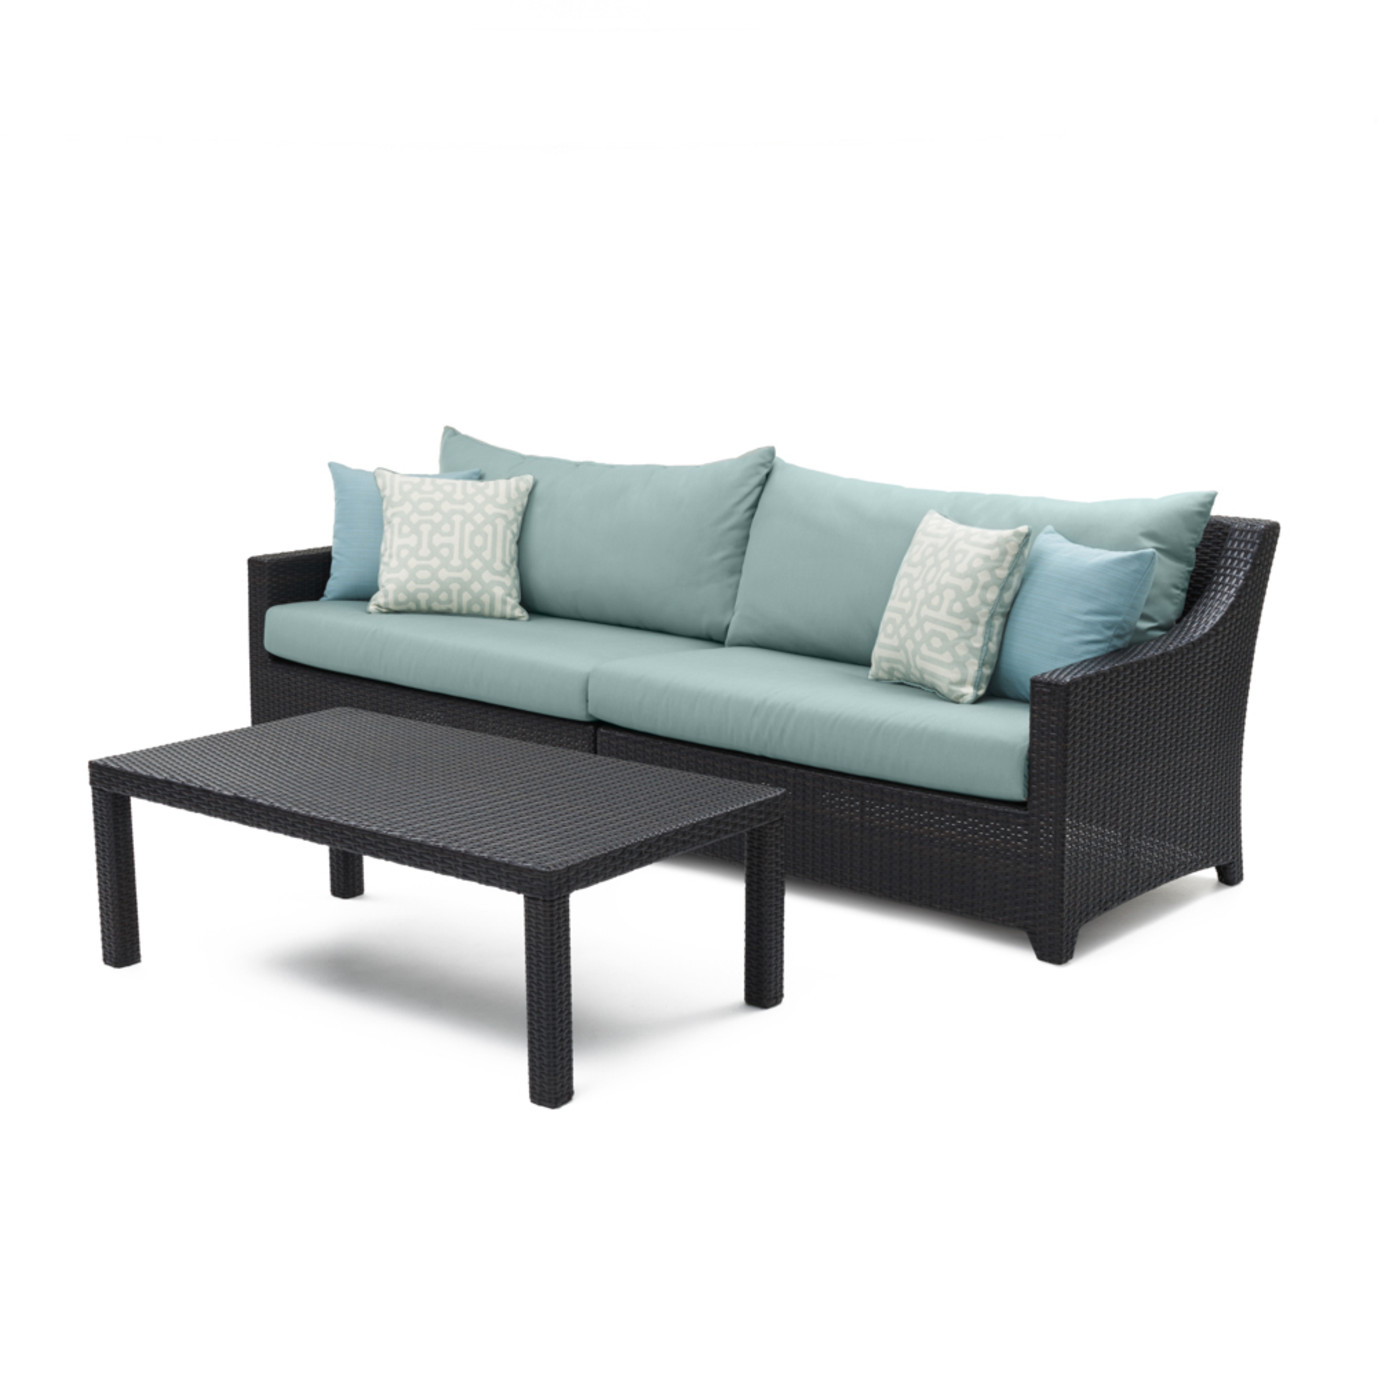 Deco™ Sofa & Coffee Table - Spa Blue